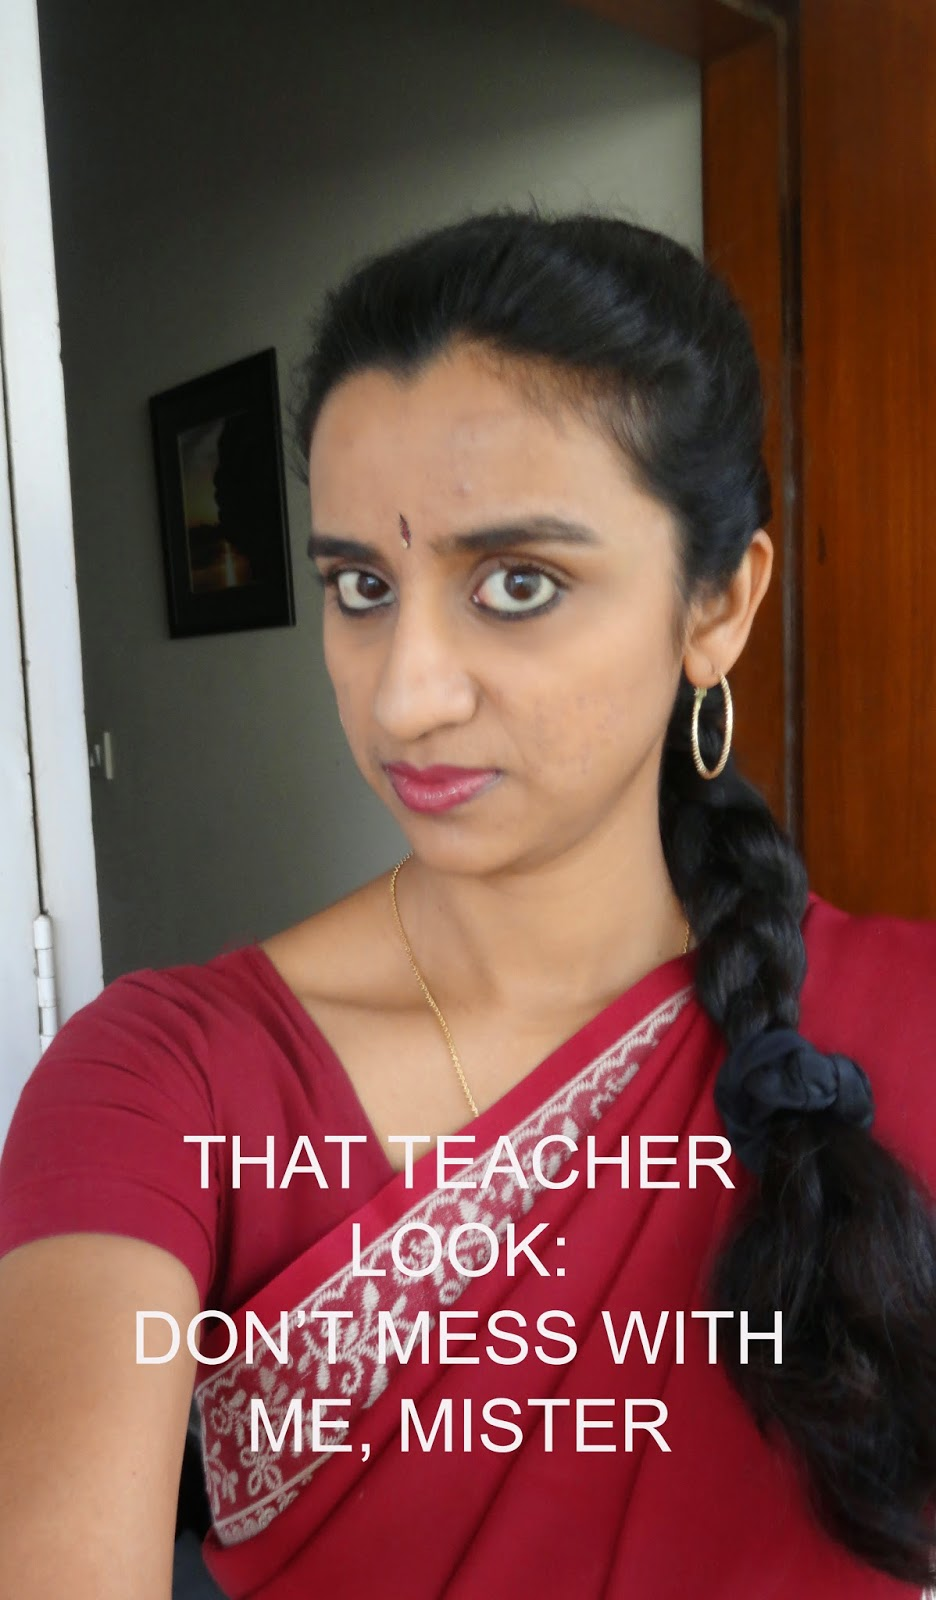 LOTD: That teacher look image